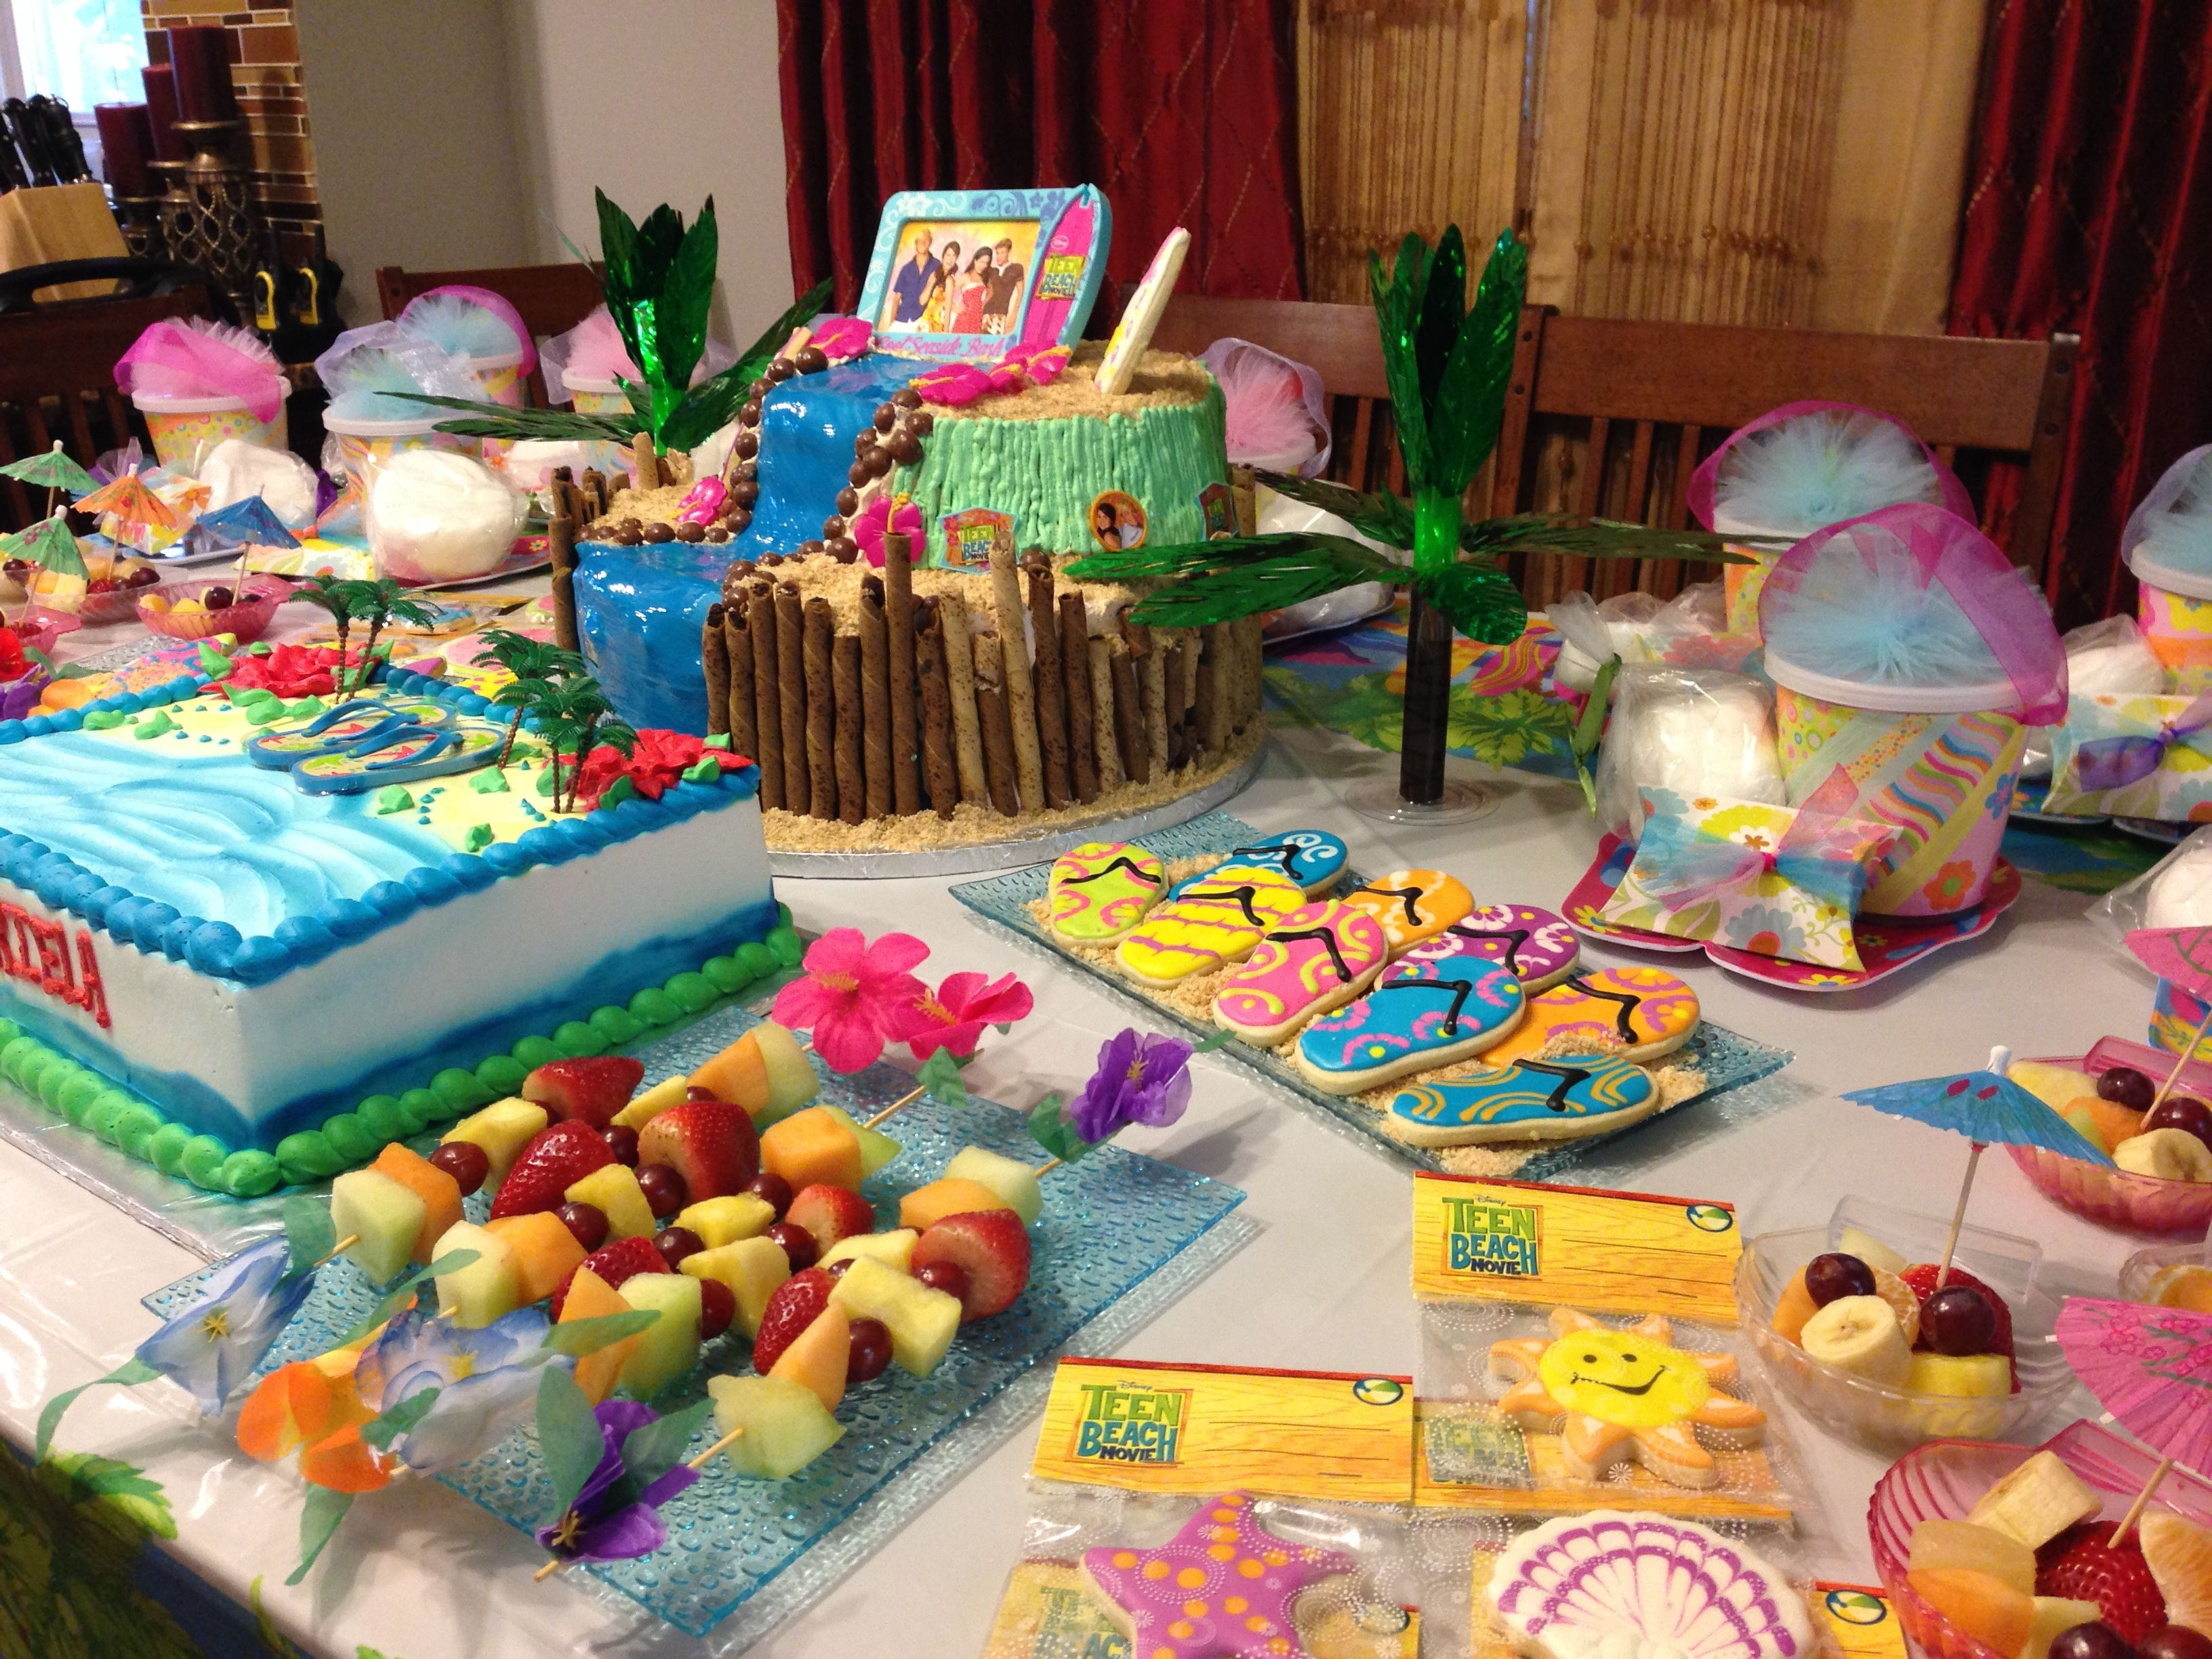 Teen Beach Movie Party Table Decoration